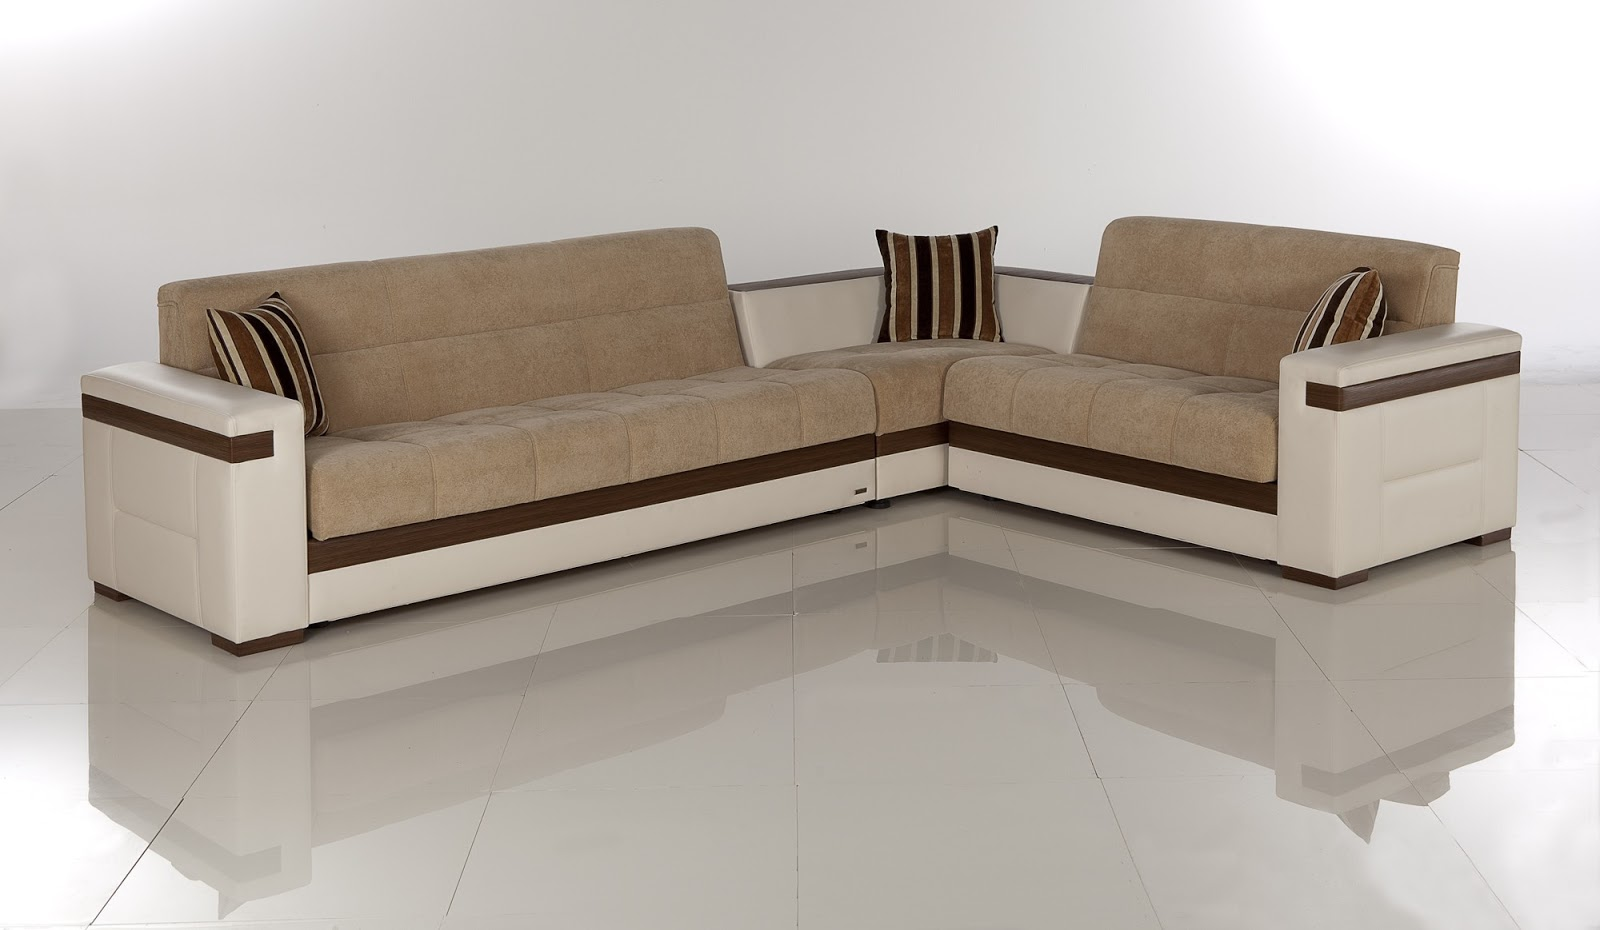 Sofa designs ideas home and design Sofa set designs for home